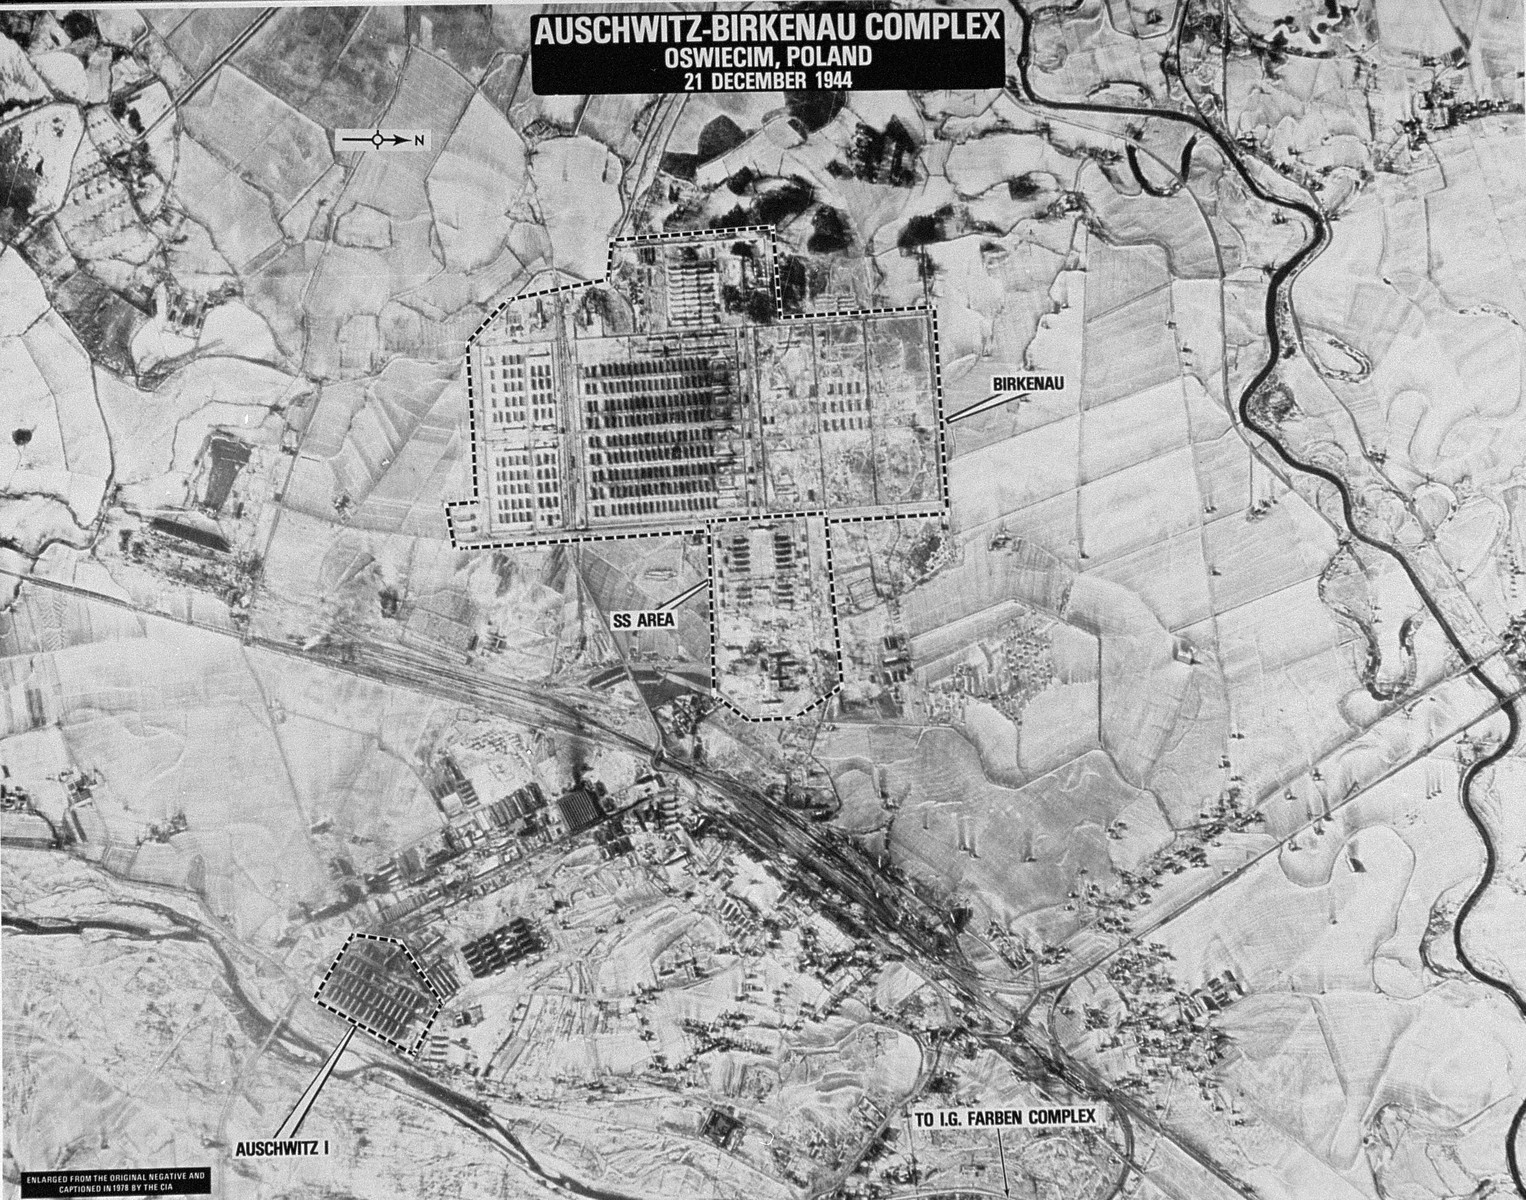 An aerial reconnaissance photograph showing  Auschwitz concentration camp, including the Auschwitz I and Auschwitz II camps and the surrounding area.